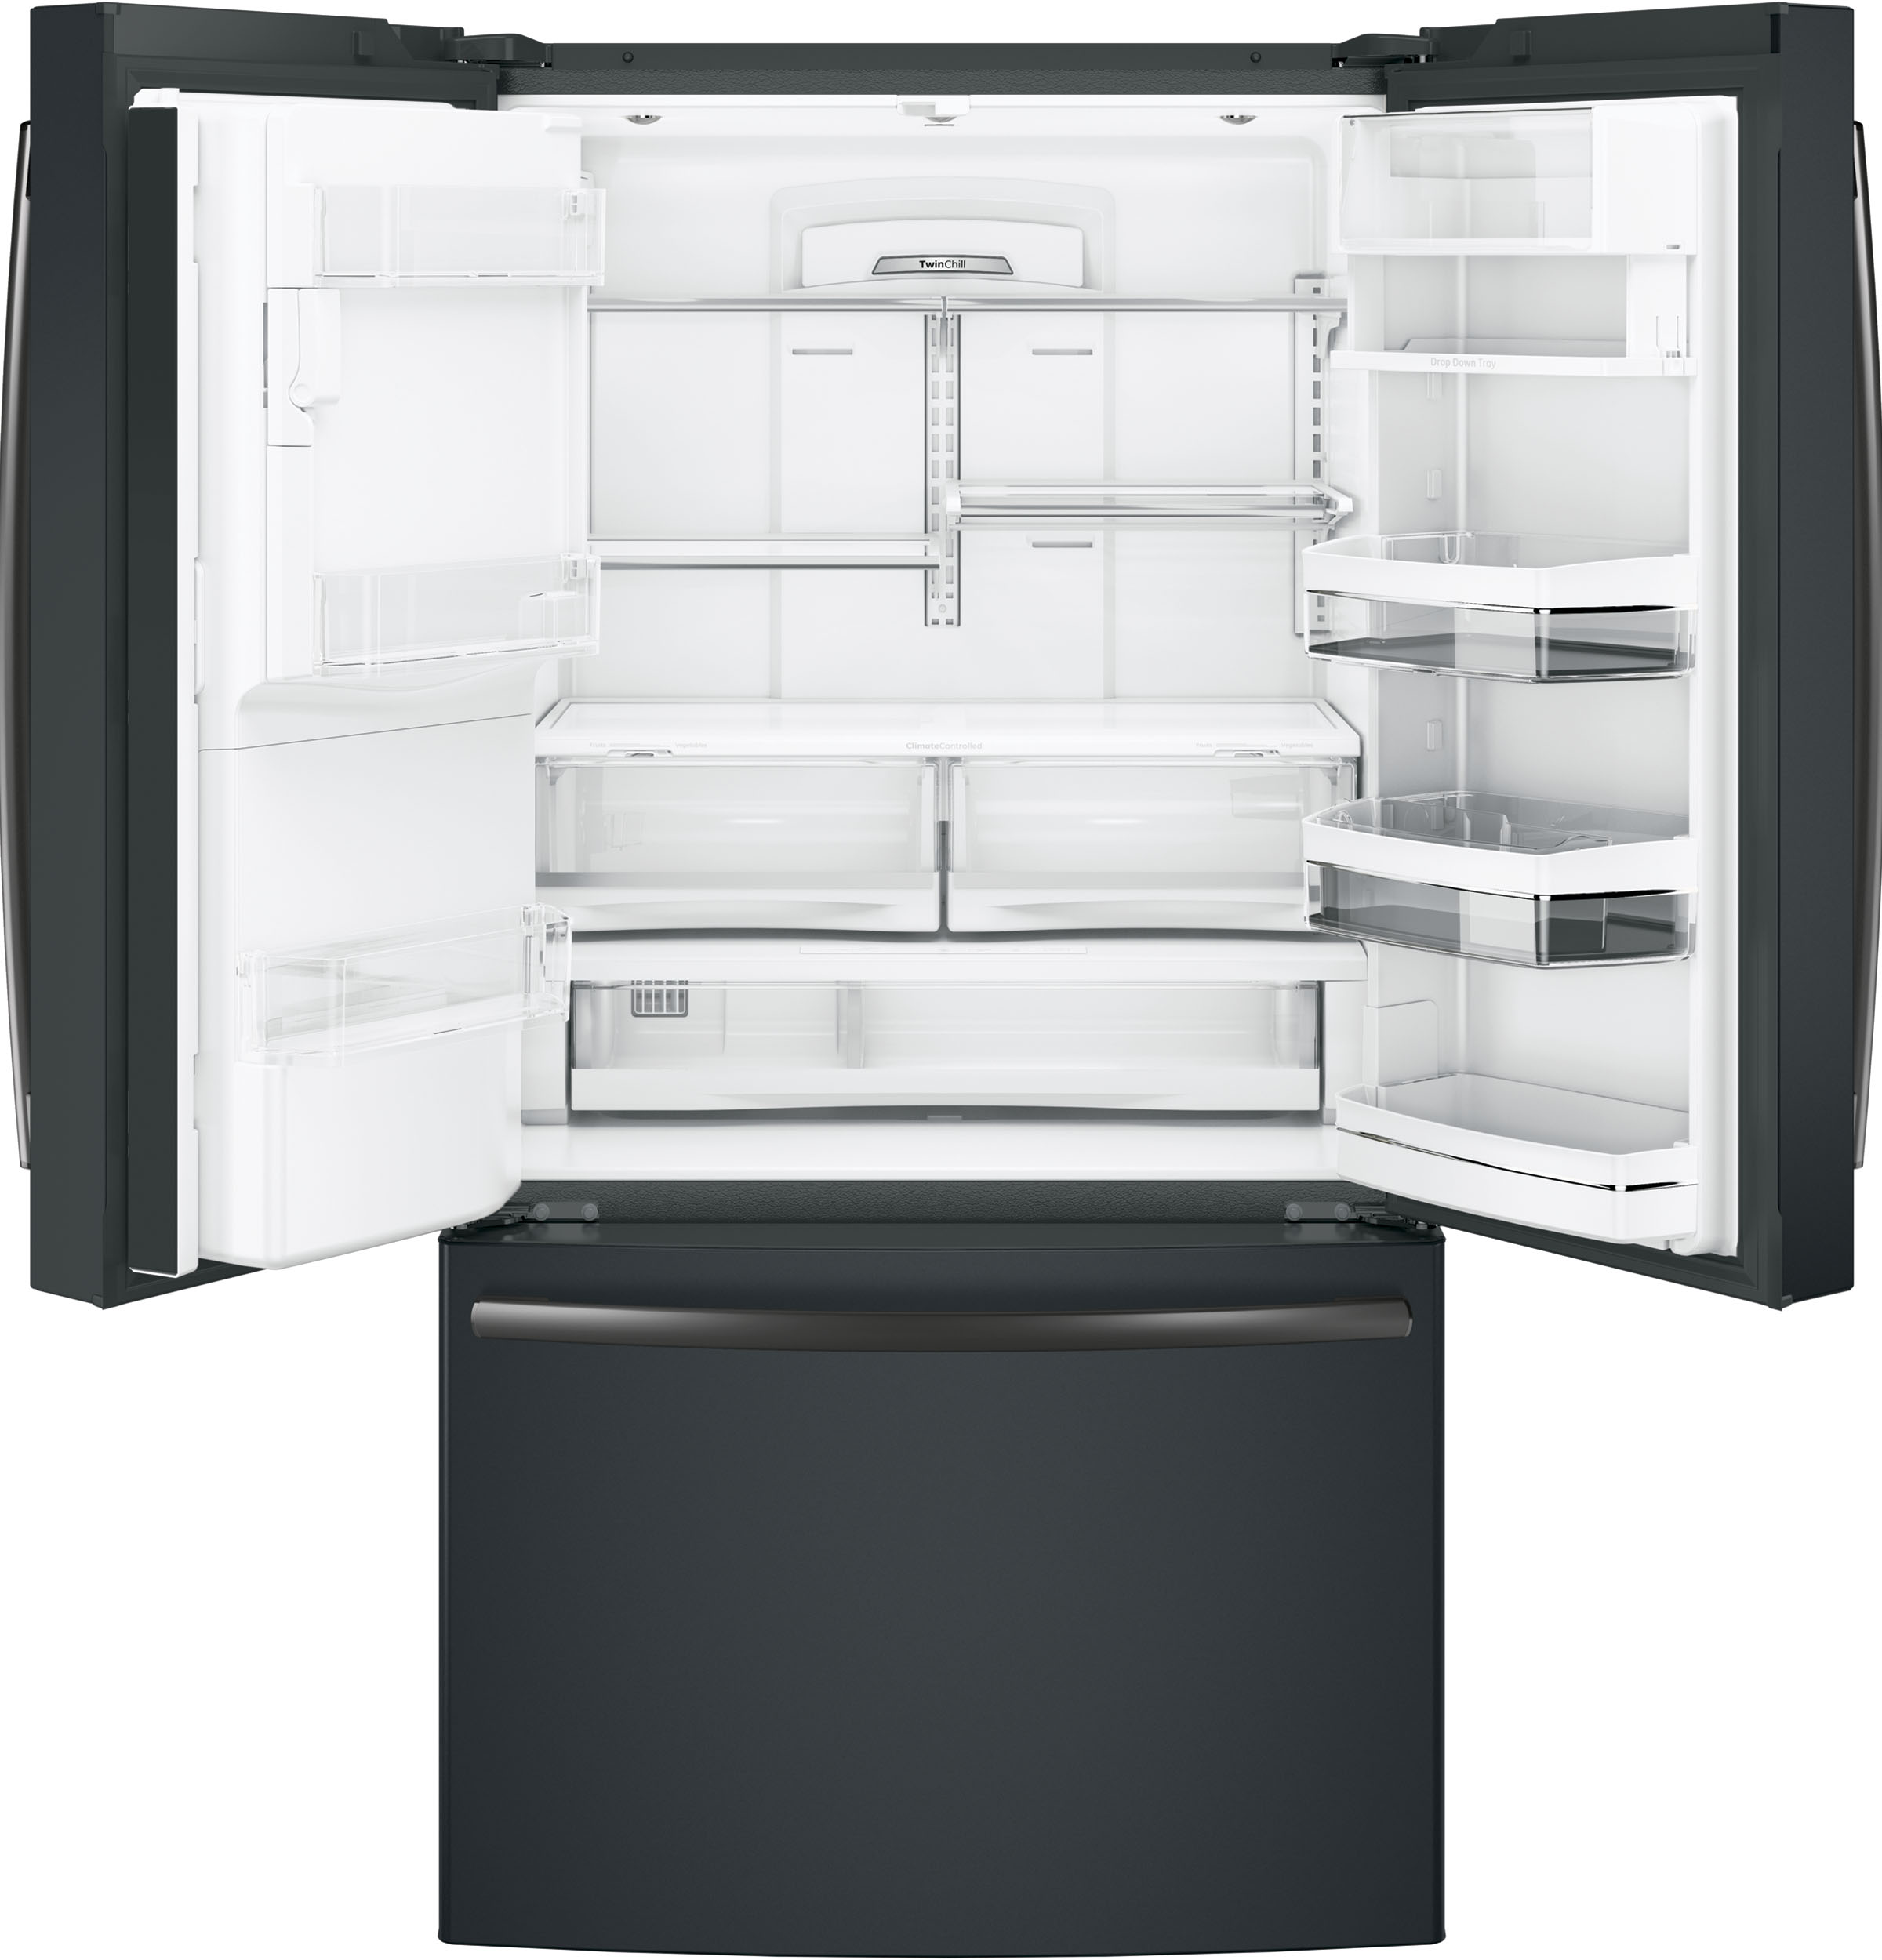 GE Profile™ Series ENERGY STAR® 22.2 Cu. Ft. Counter-Depth French-Door Refrigerator with Keurig® K-C